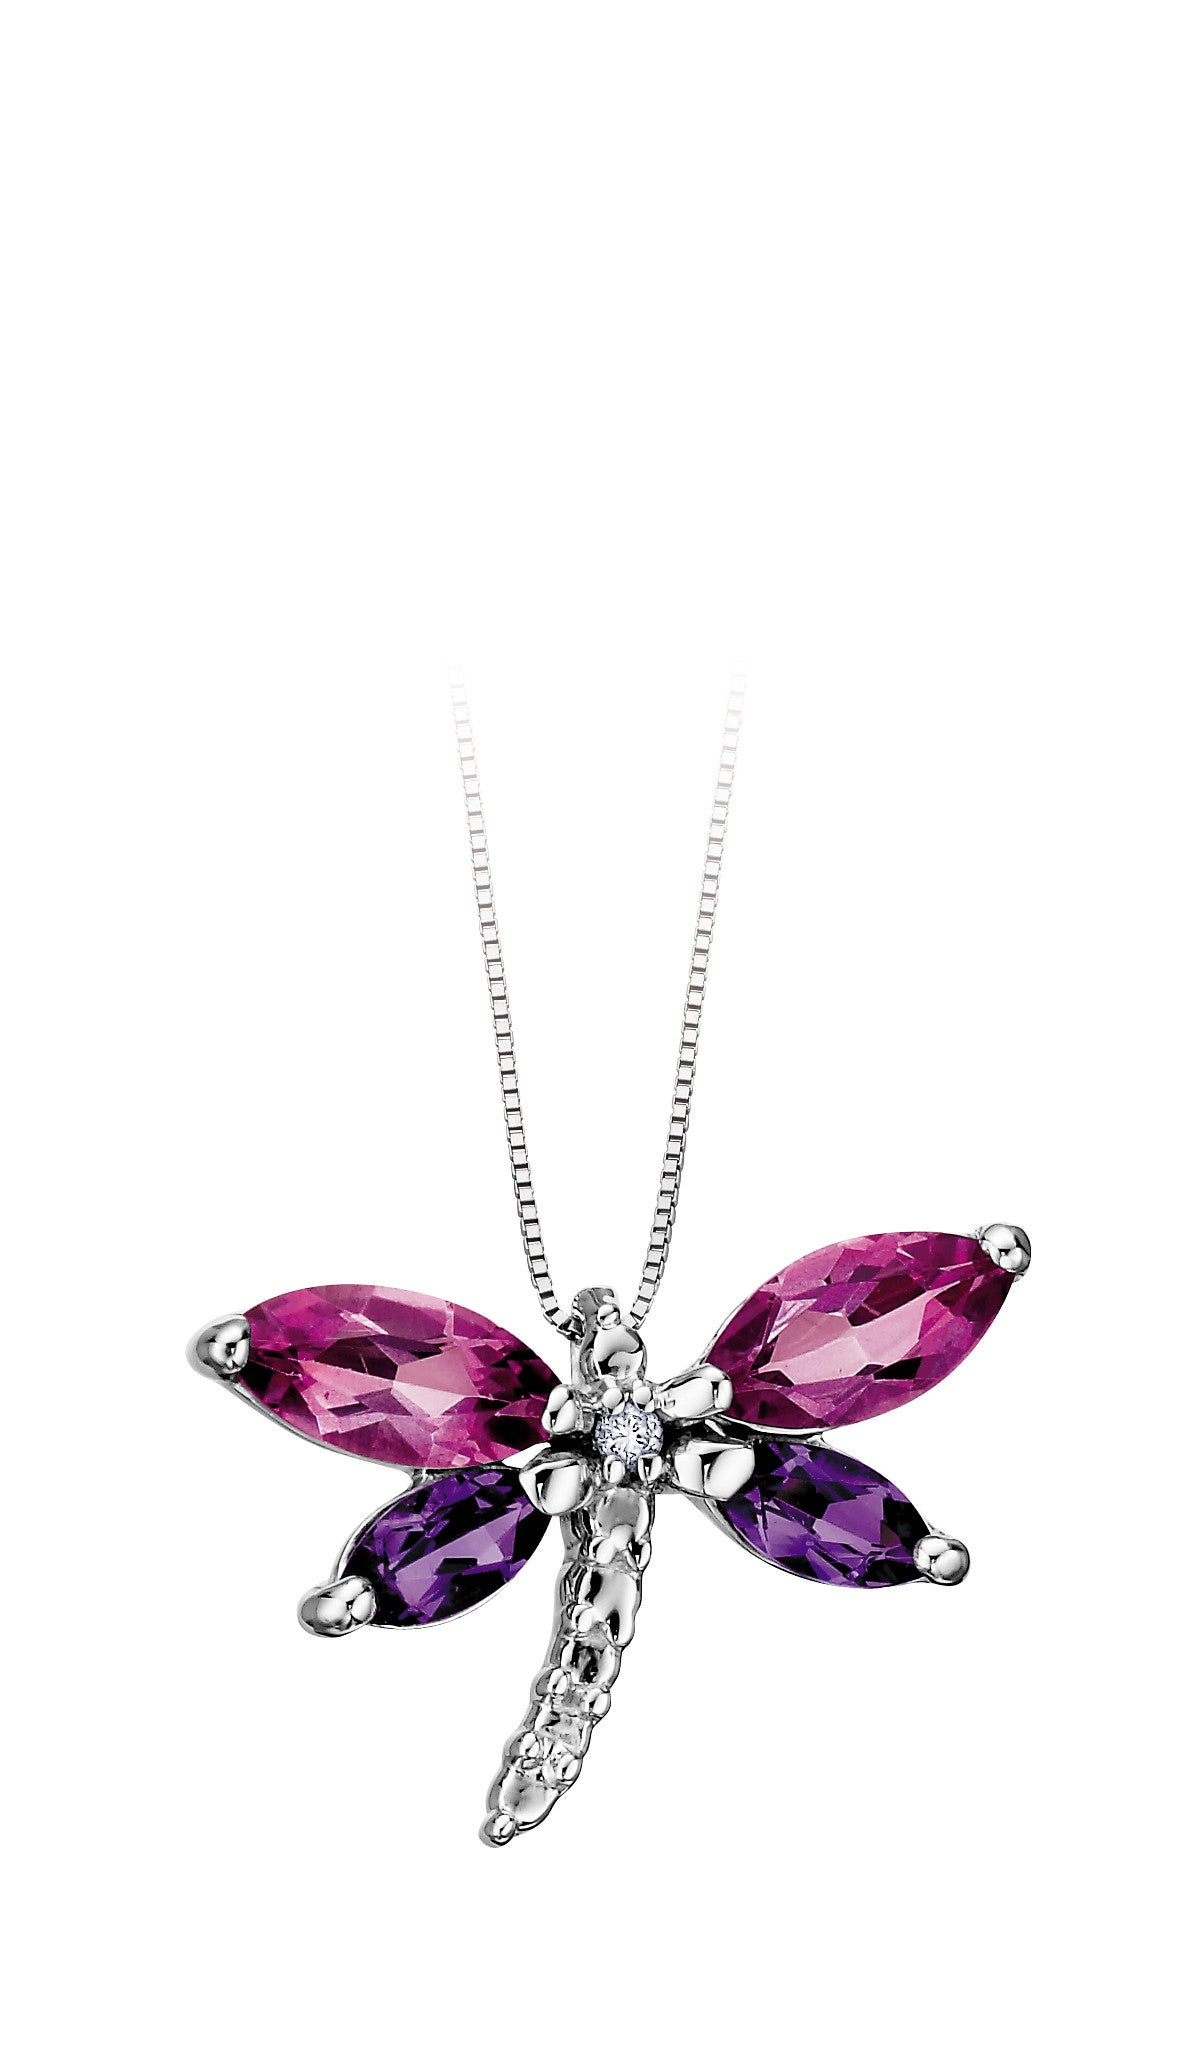 chain on pave co dp of shell dragonfly pendant tuscany jewellery amazon uk silver necklace sterling cm curb inch